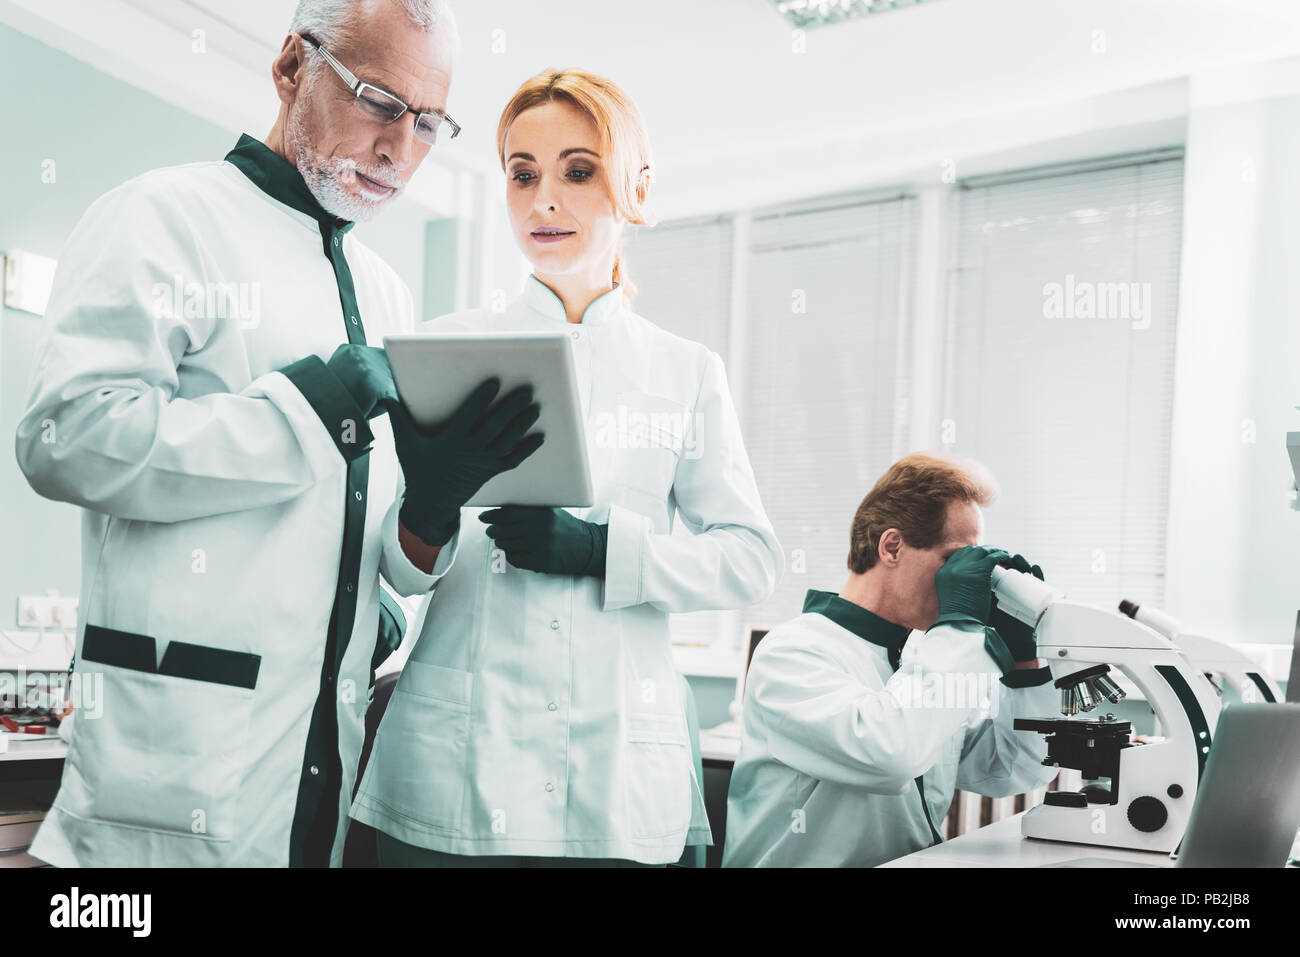 Two chemists standing near researcher using microscope - Stock Image